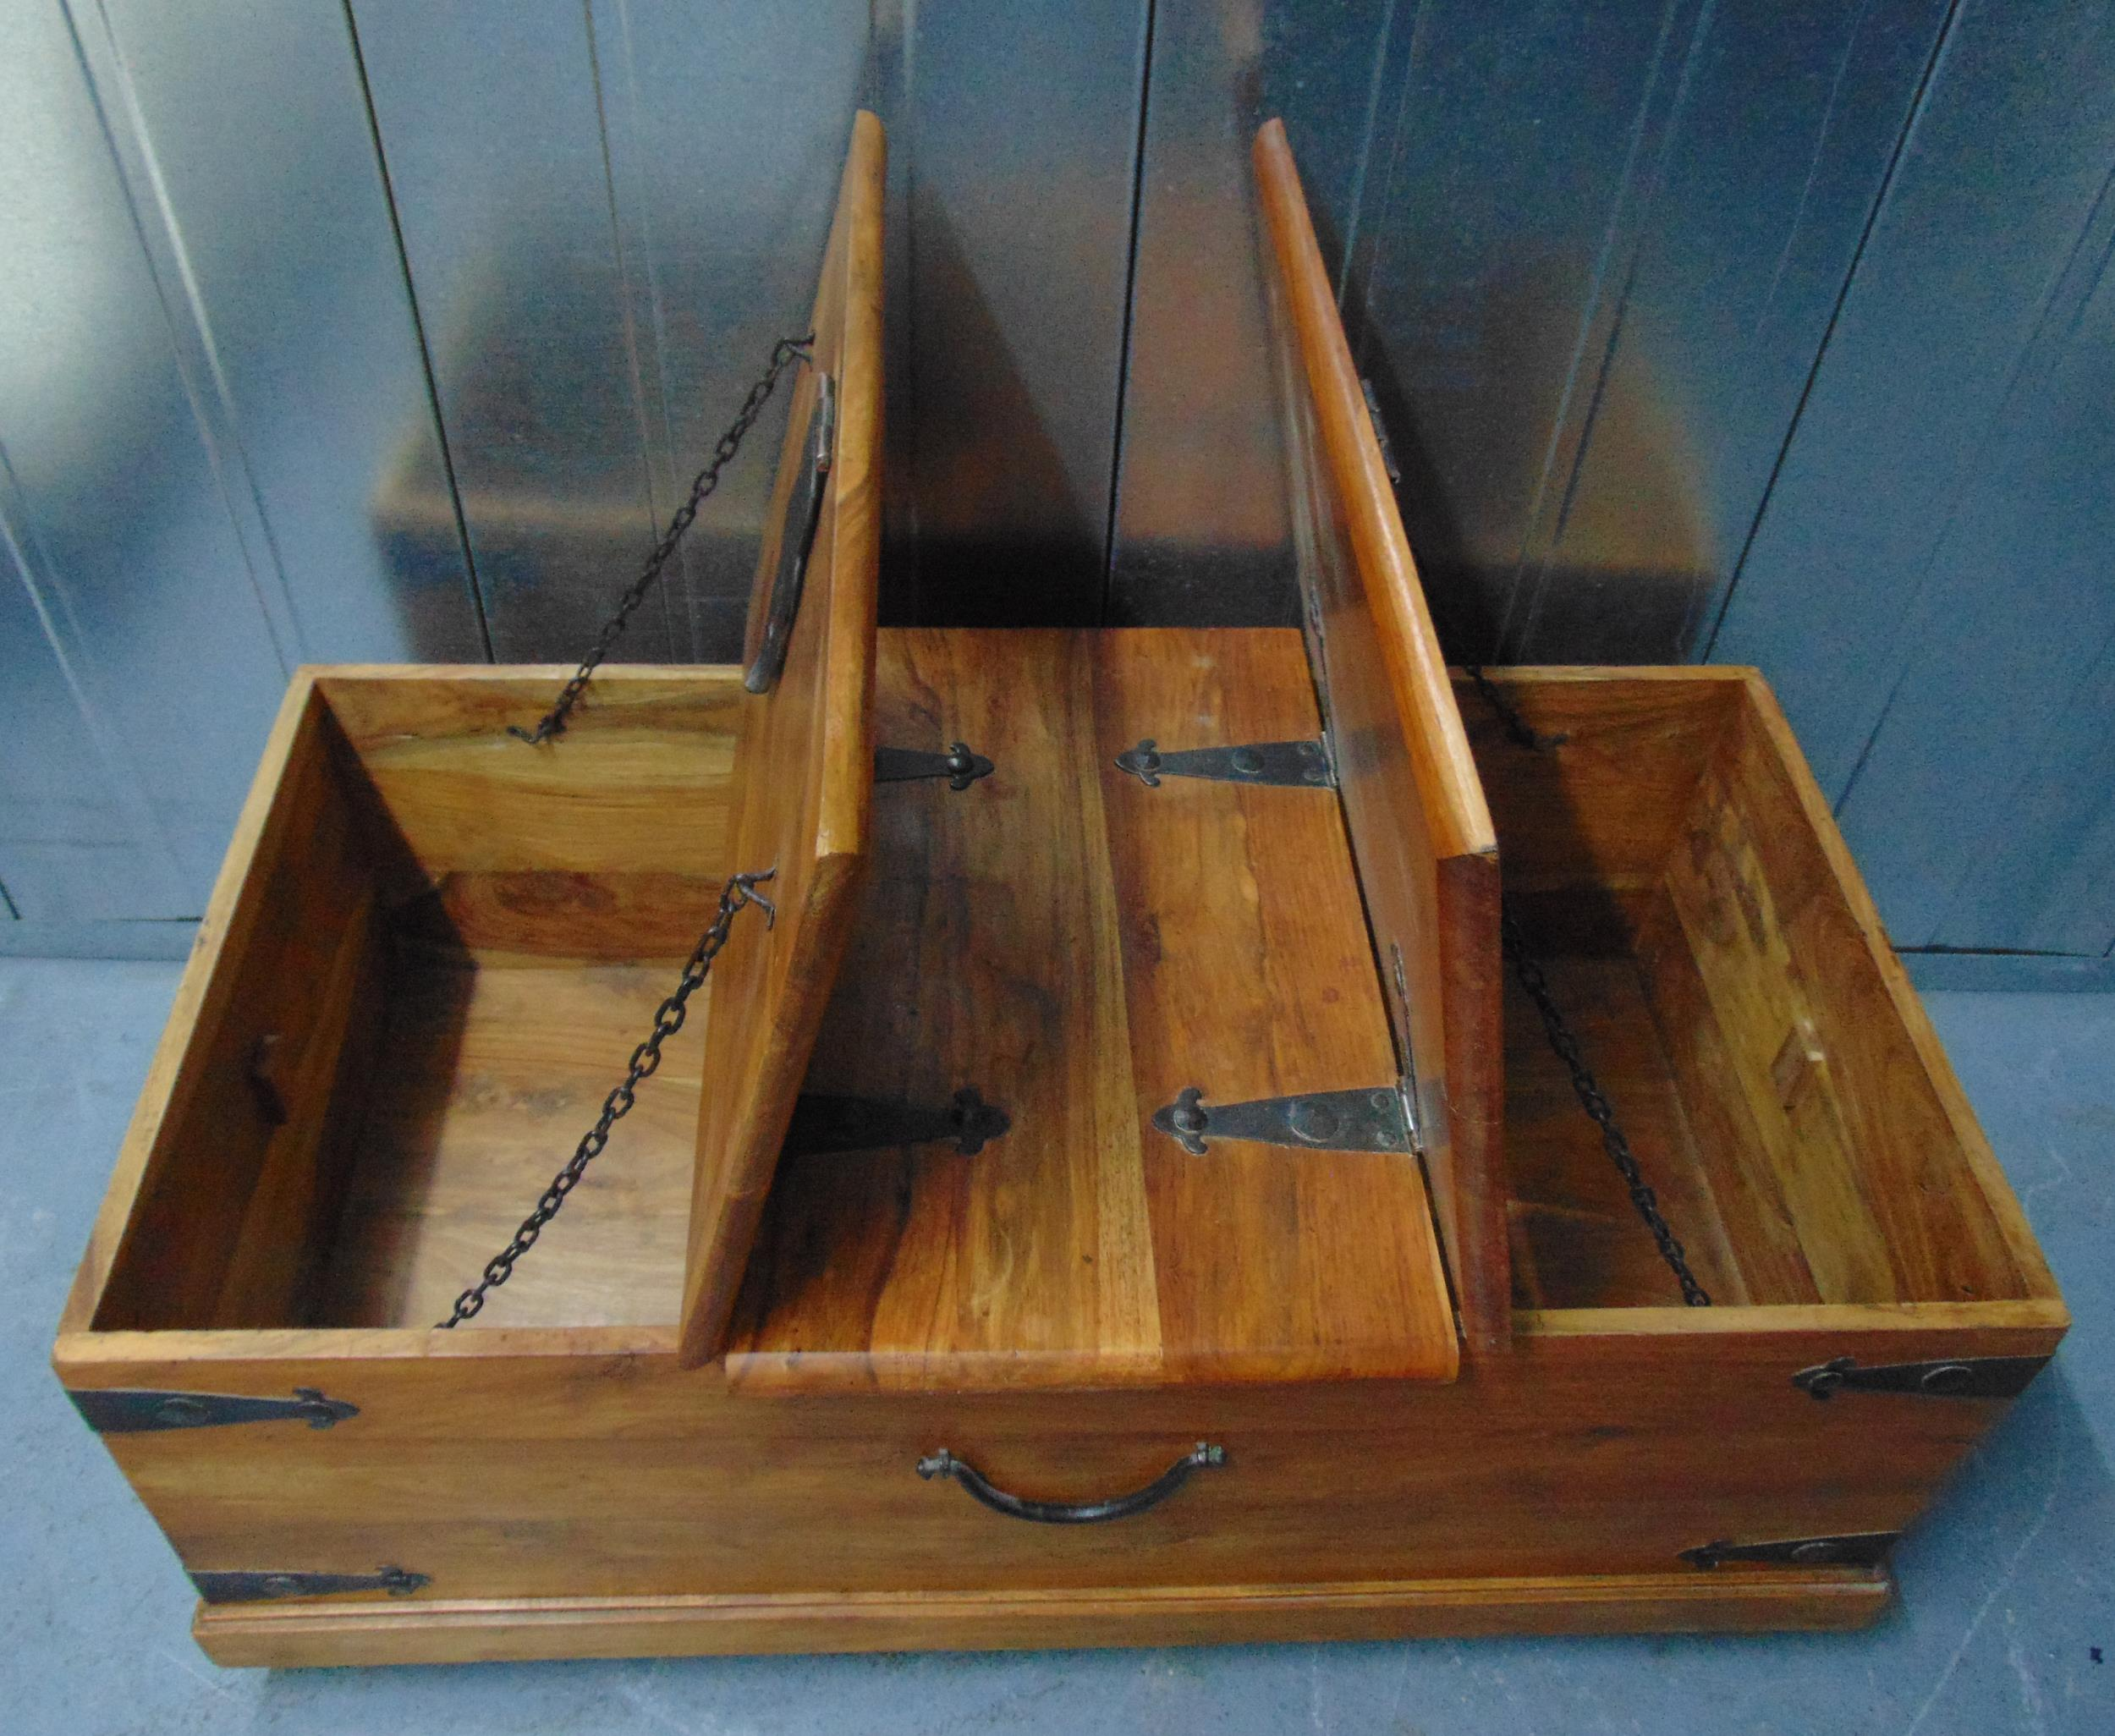 A rectangular wooden chest with metal bands to the sides and hinged top, 46 x 110.5 x 60cm - Image 2 of 2